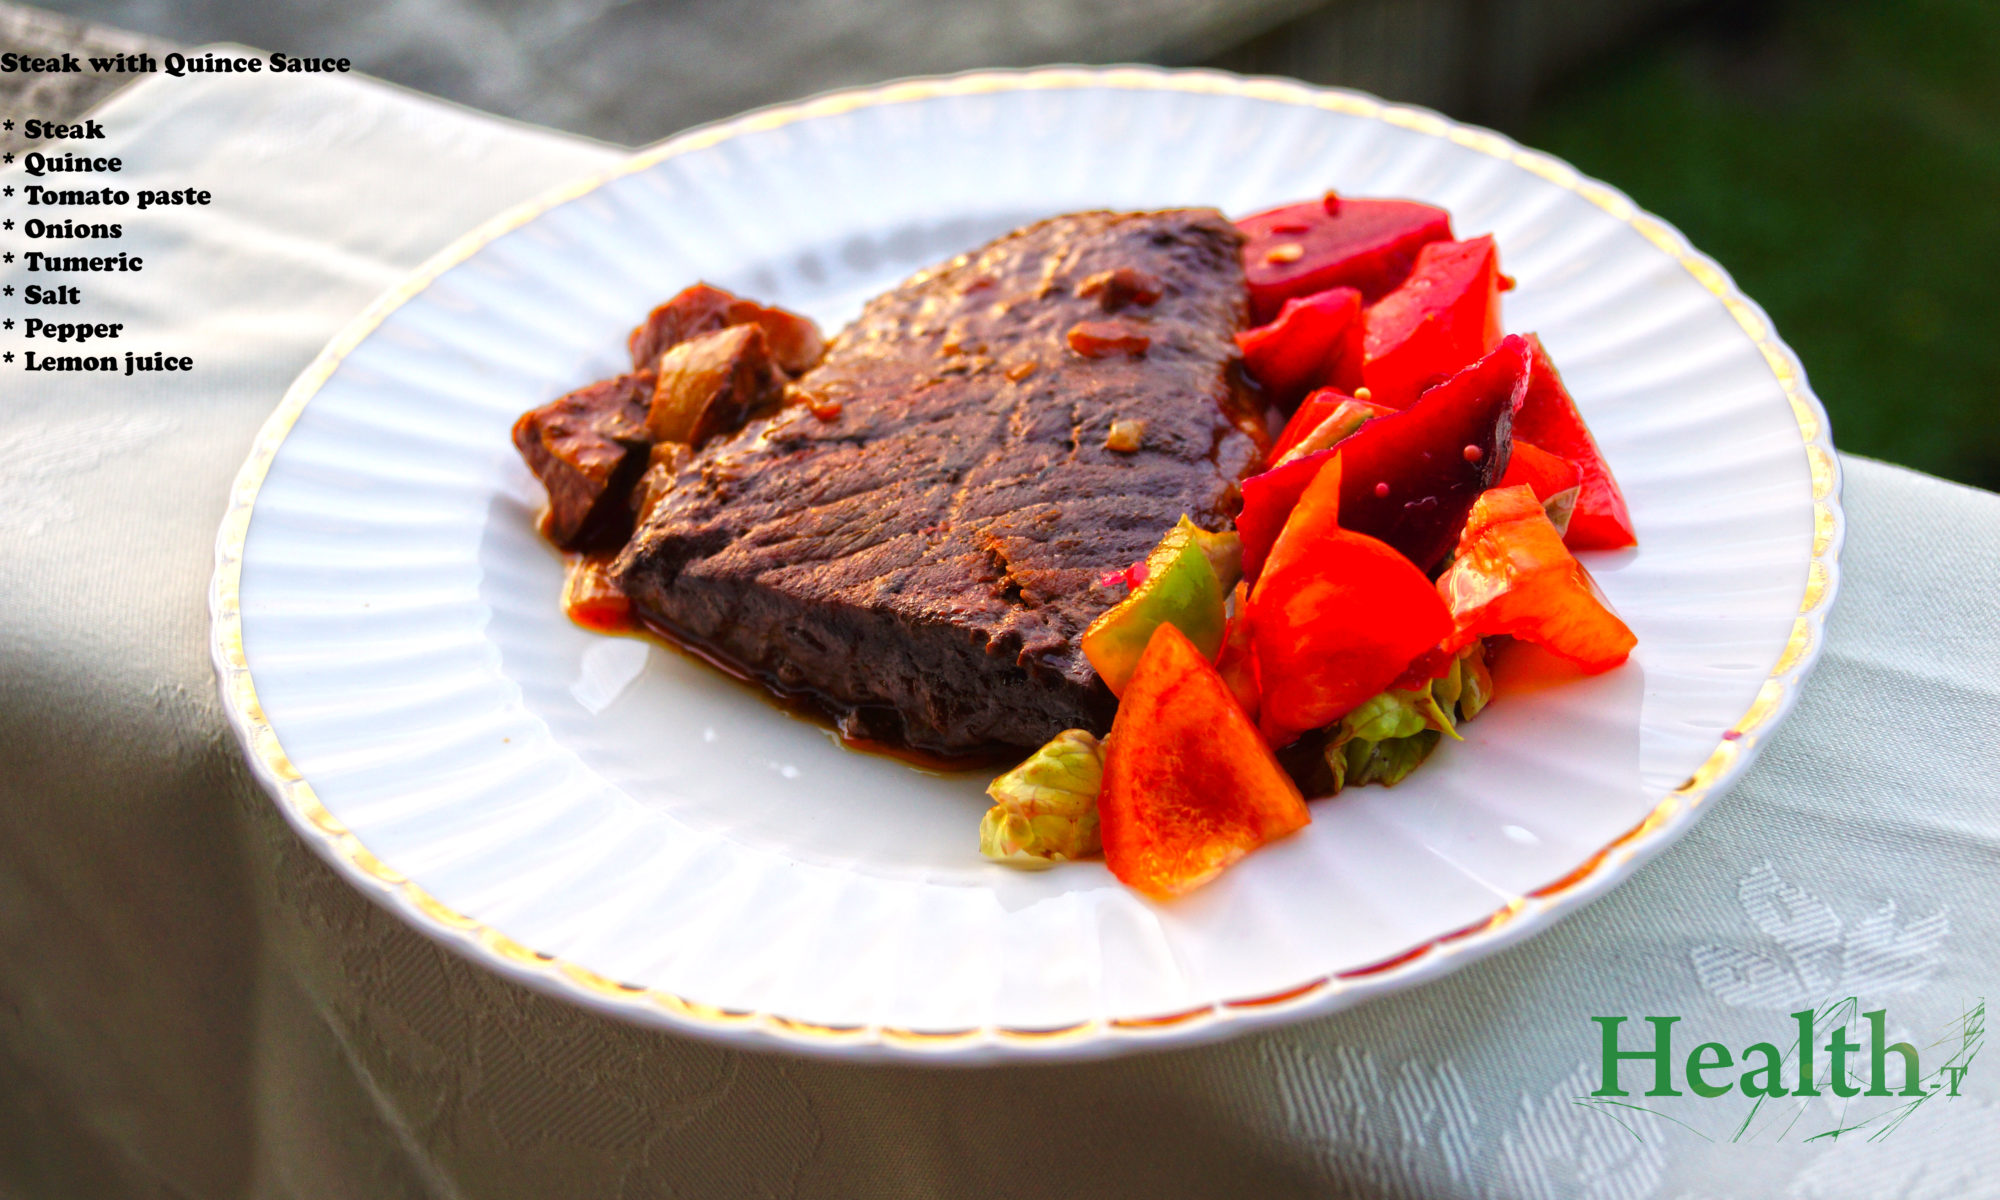 Steak with Quince Sauce Ingredients